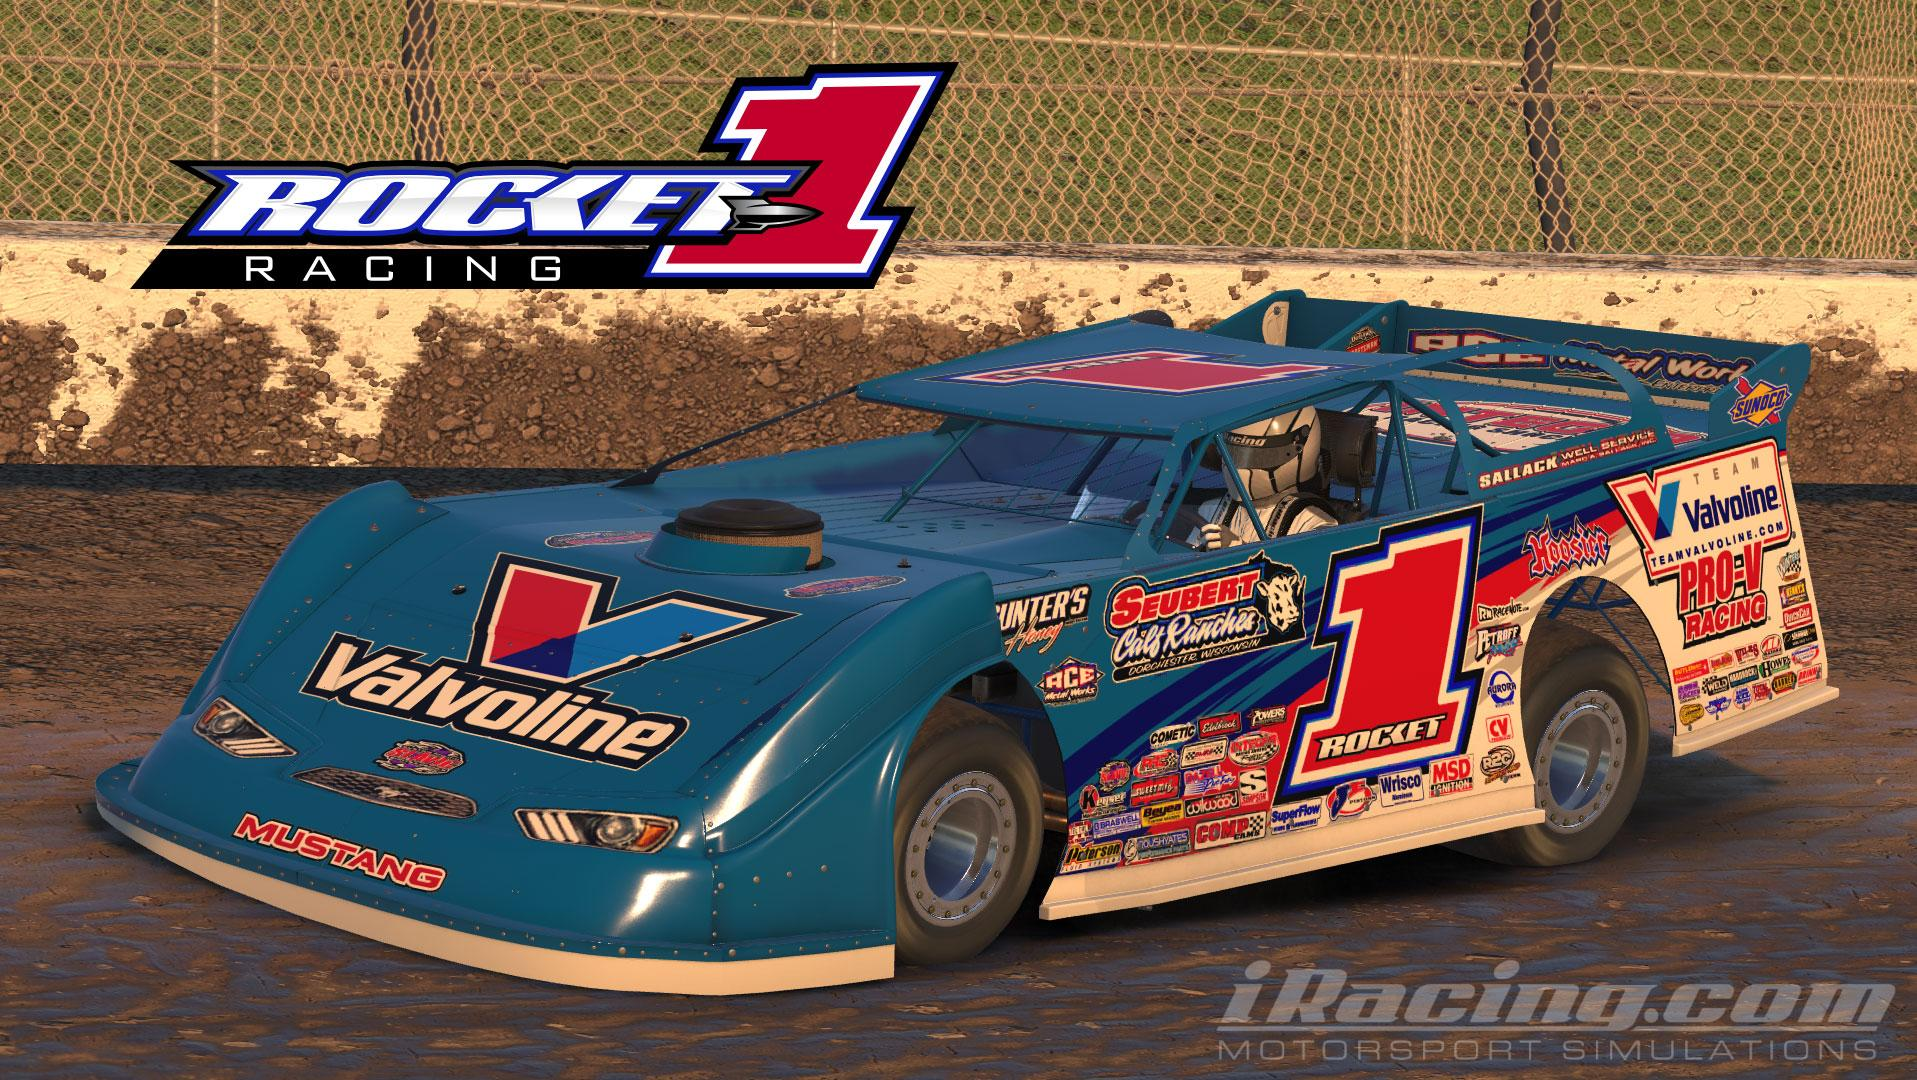 Preview of 2017 Valvoline/Seubert Calf Ranches/Rocket Chassis #XR1 Rocket1 Racing Ford Mustang (v3) by Seann Anderson